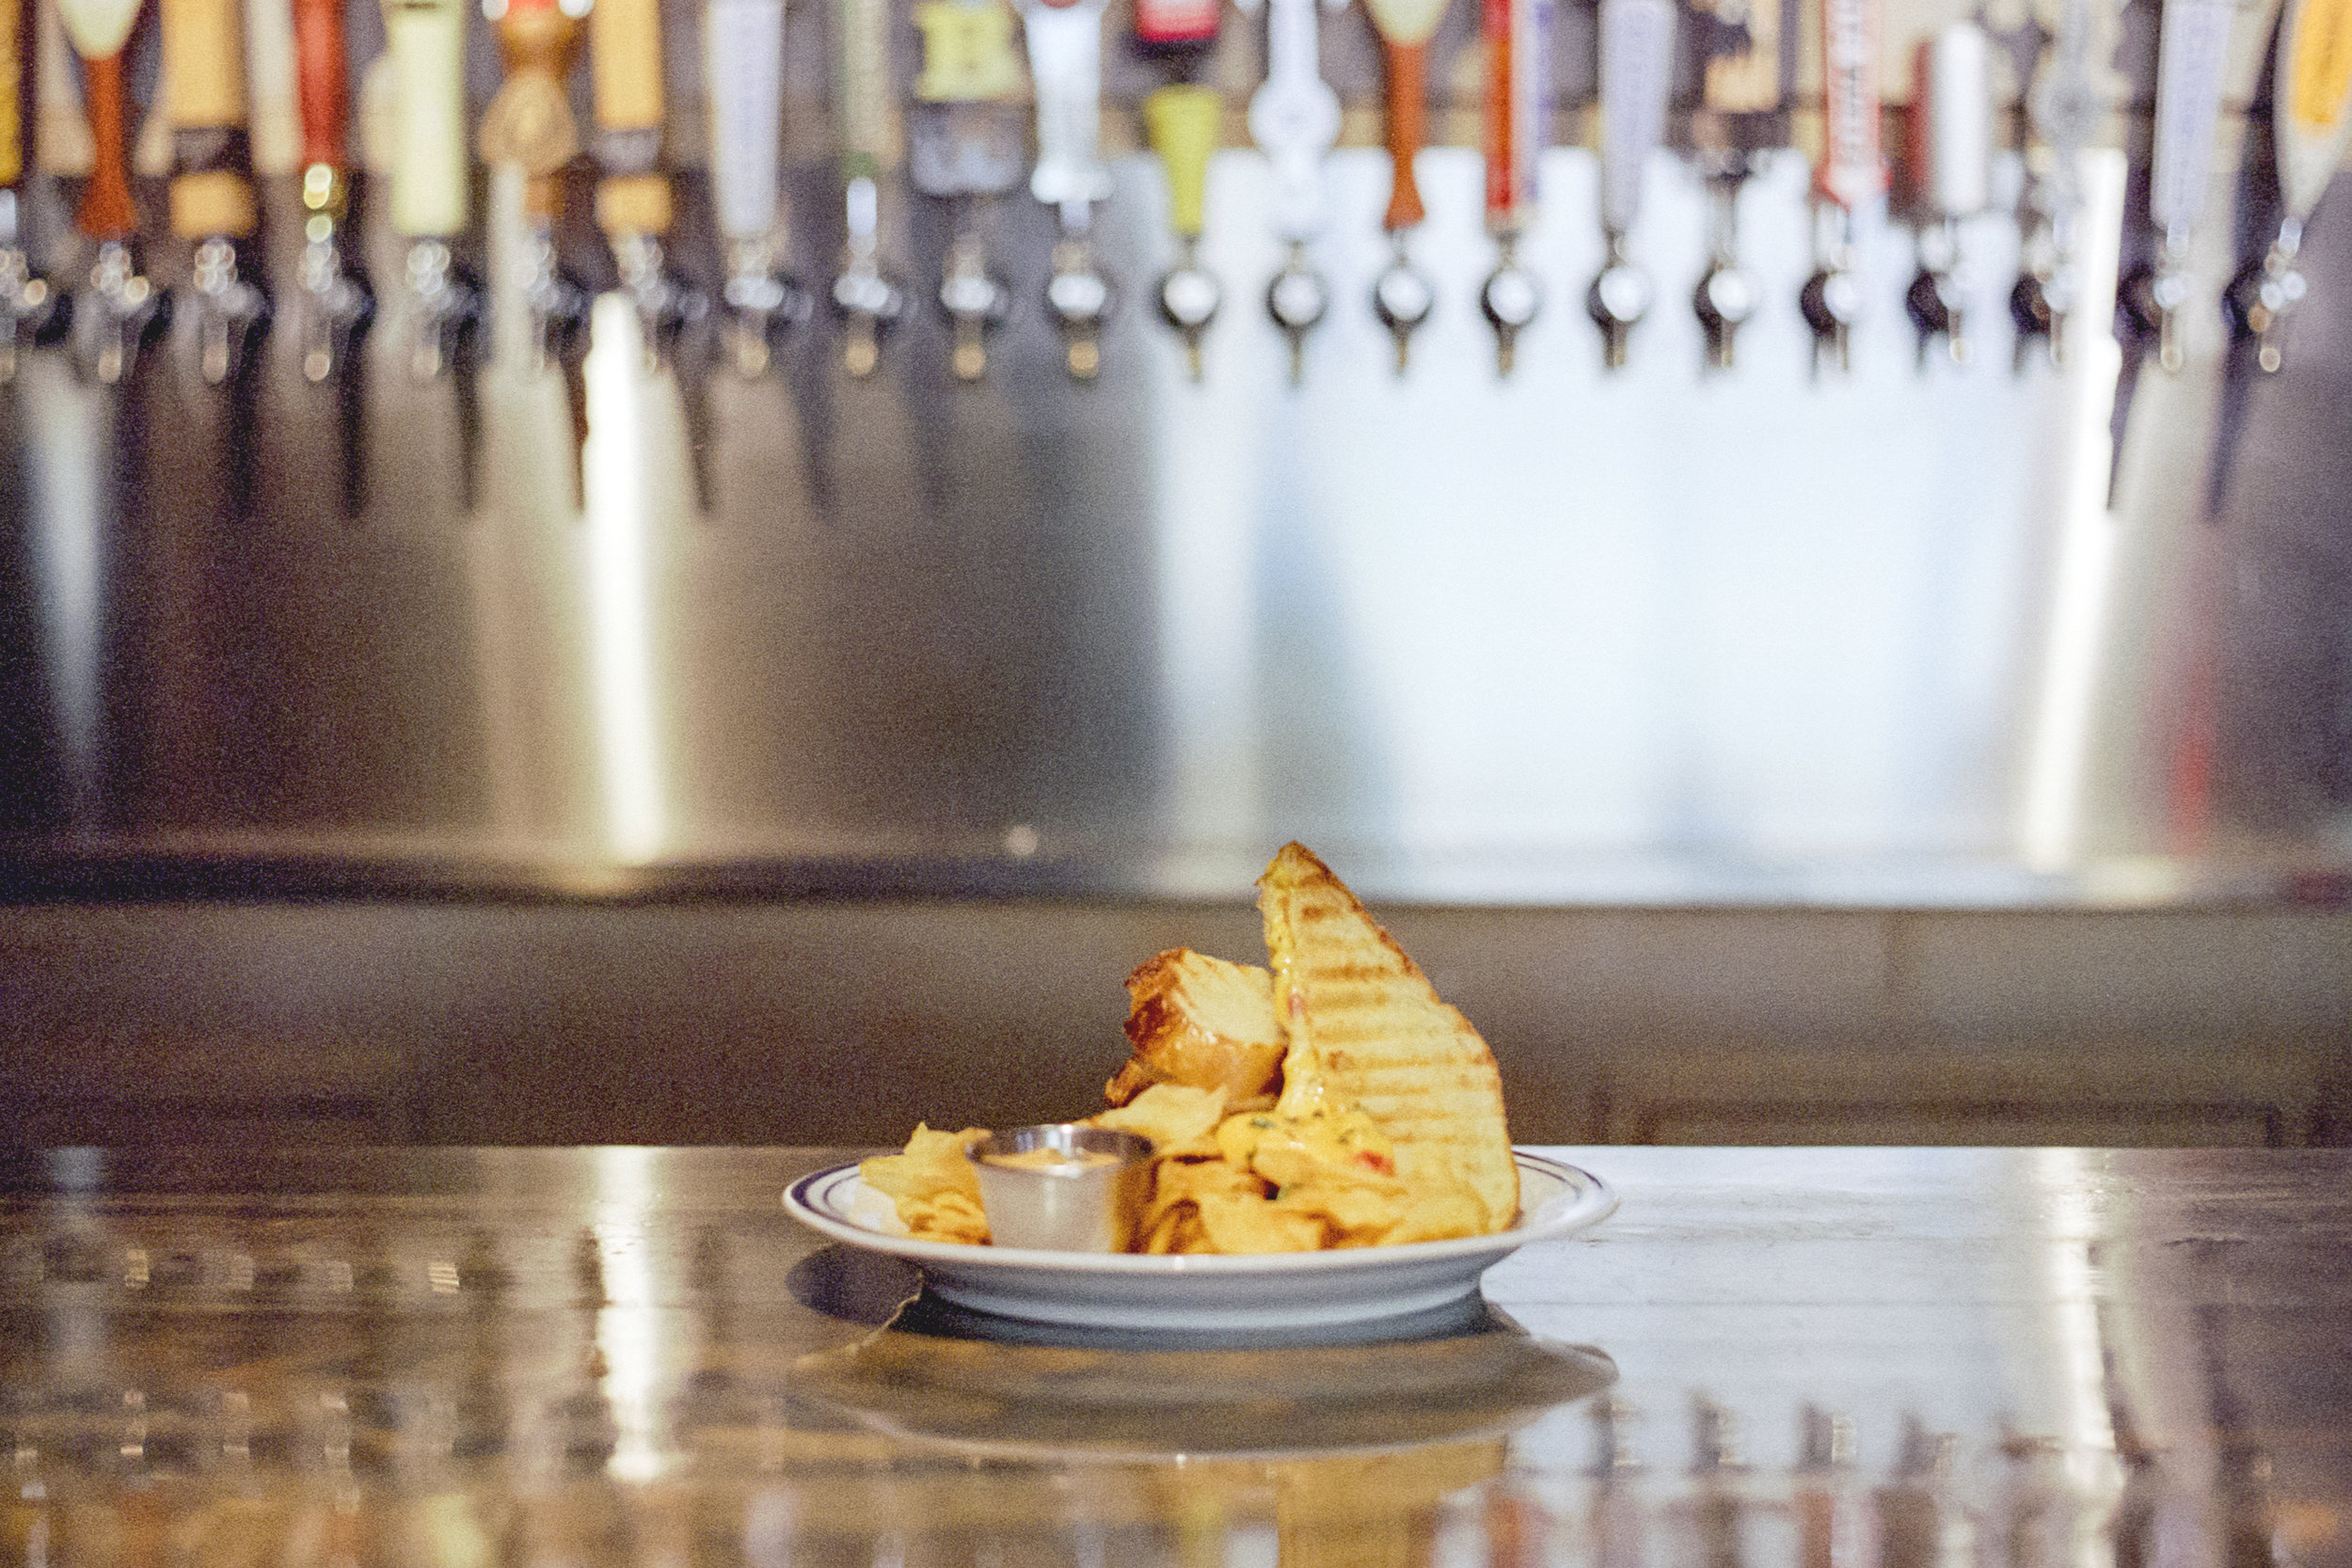 GRILLED PIMENTO CHEESE | aged sharp cheddar & goat cheese. roasted red peppers, fresh thyme, chips & smoked chili aioli